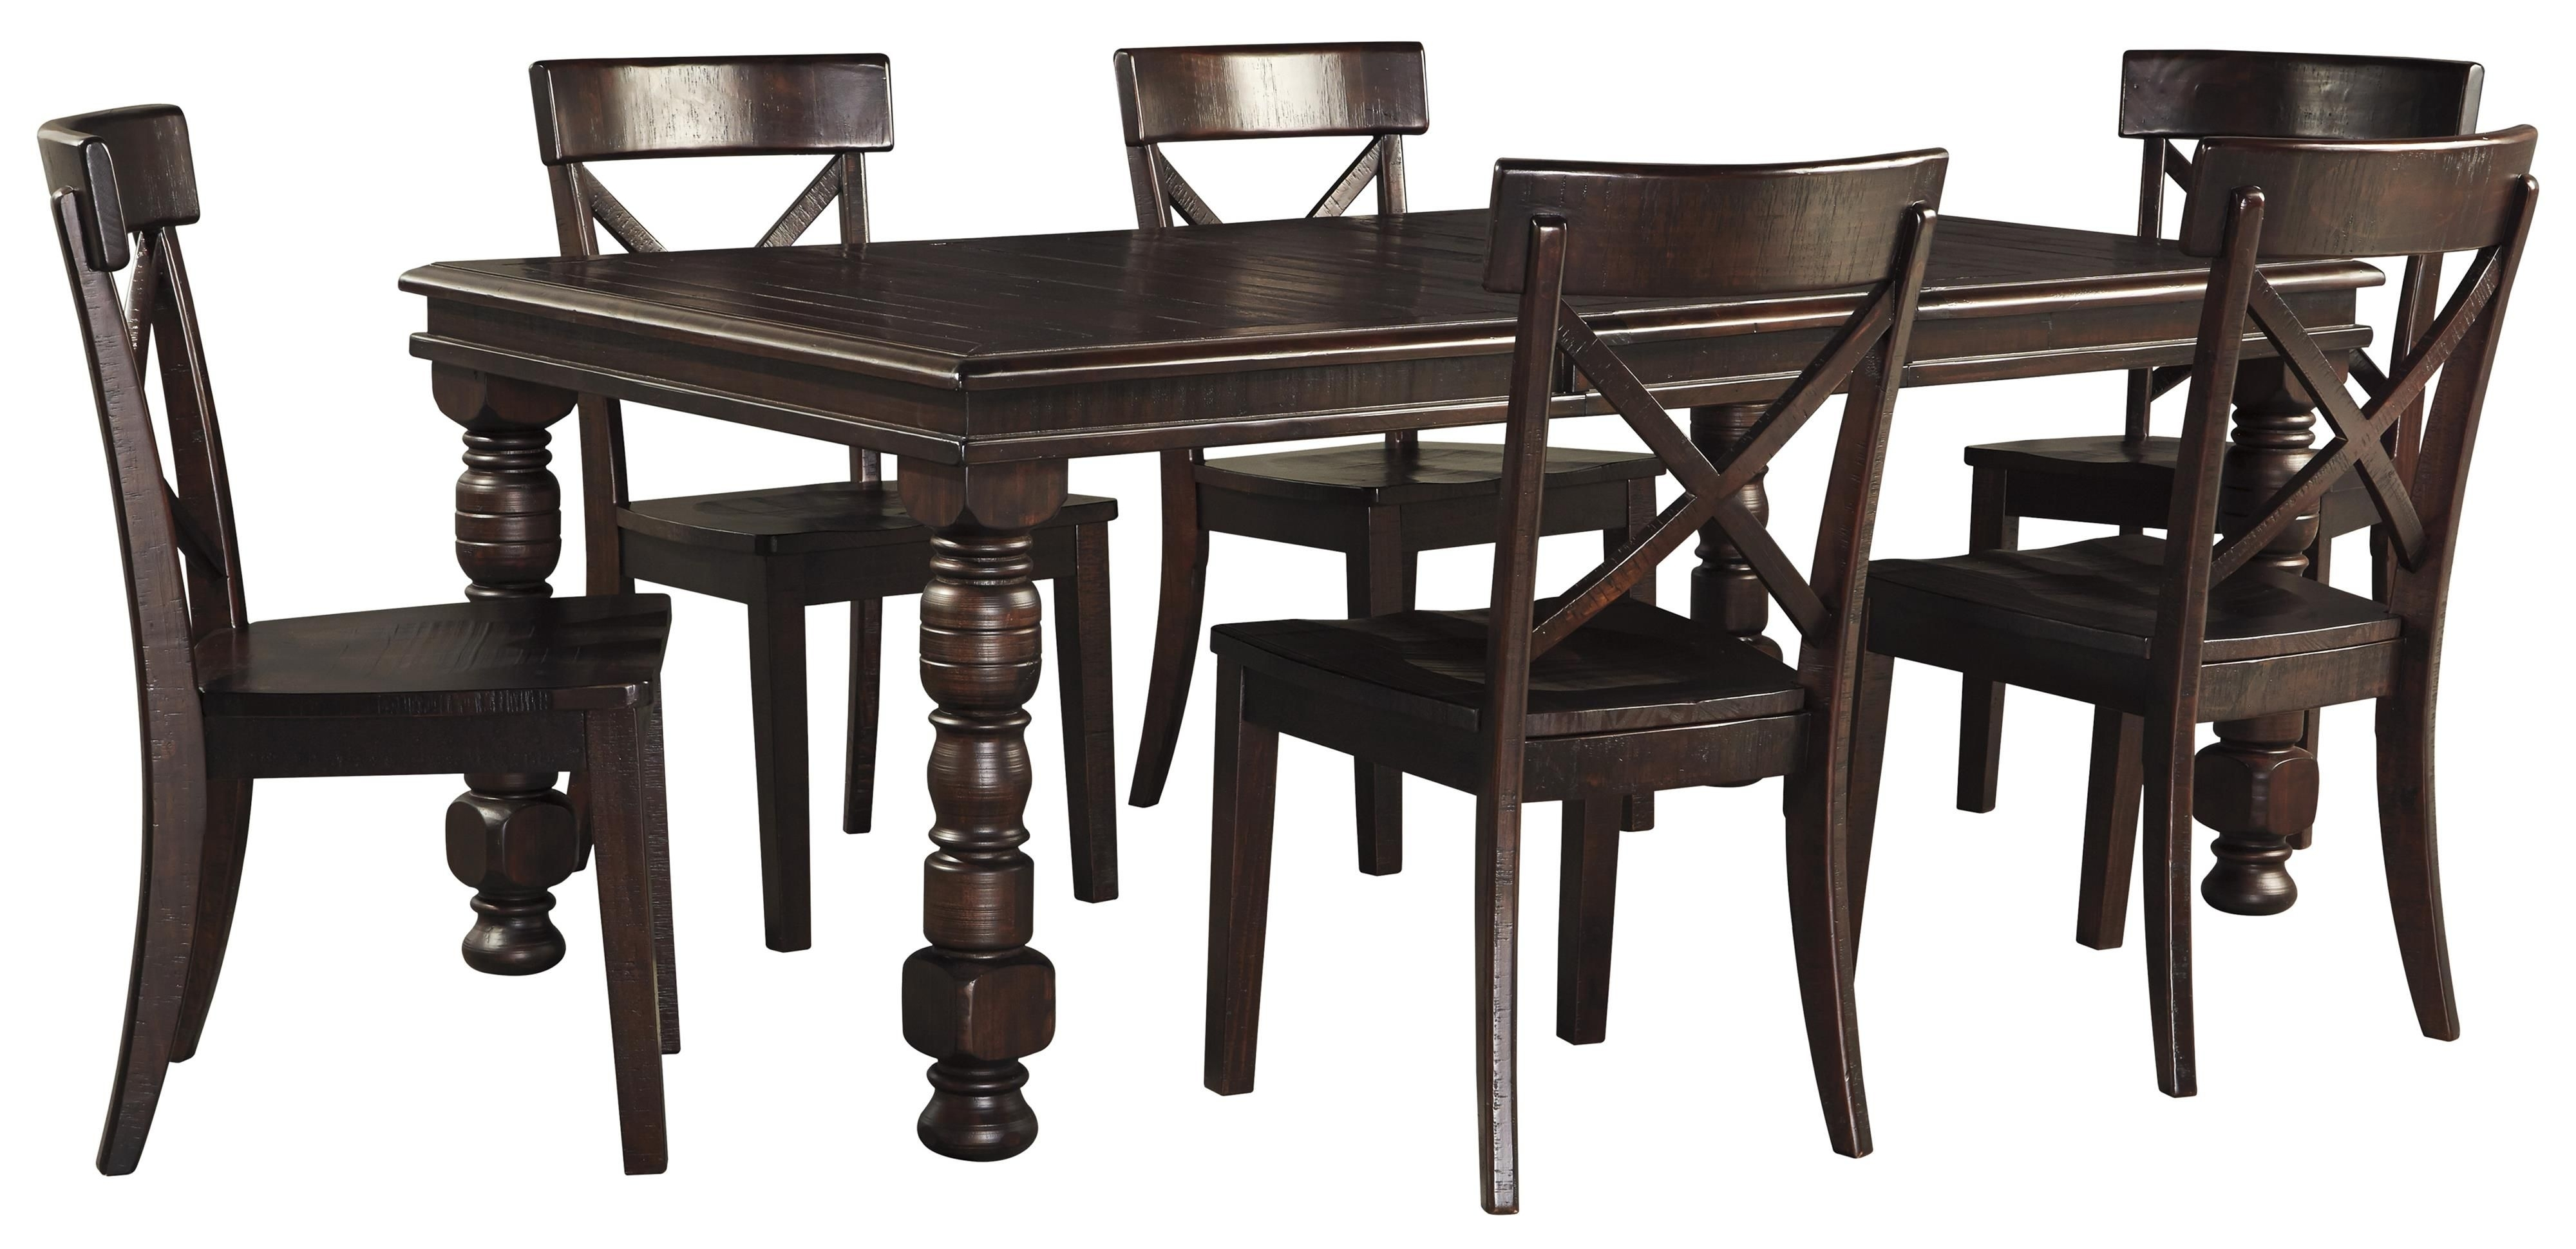 Gerlane 7 Piece Dining Table Setsignature Designashley With Regard To Latest Laurent 7 Piece Rectangle Dining Sets With Wood Chairs (Photo 12 of 20)